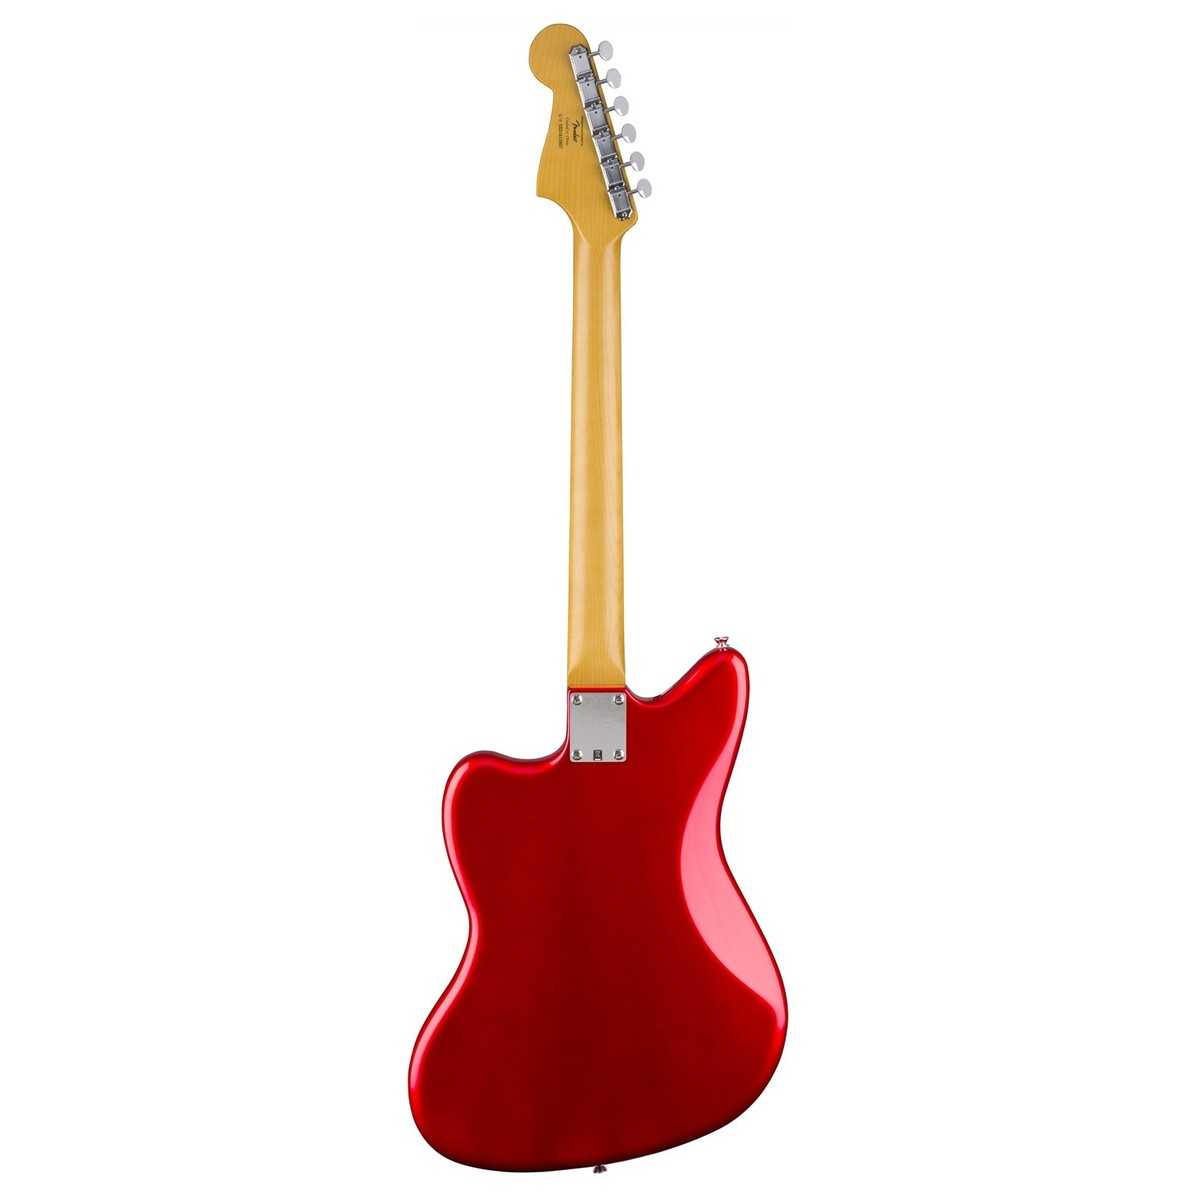 squier by fender deluxe jazzmaster with tremolo candy apple red at. Black Bedroom Furniture Sets. Home Design Ideas